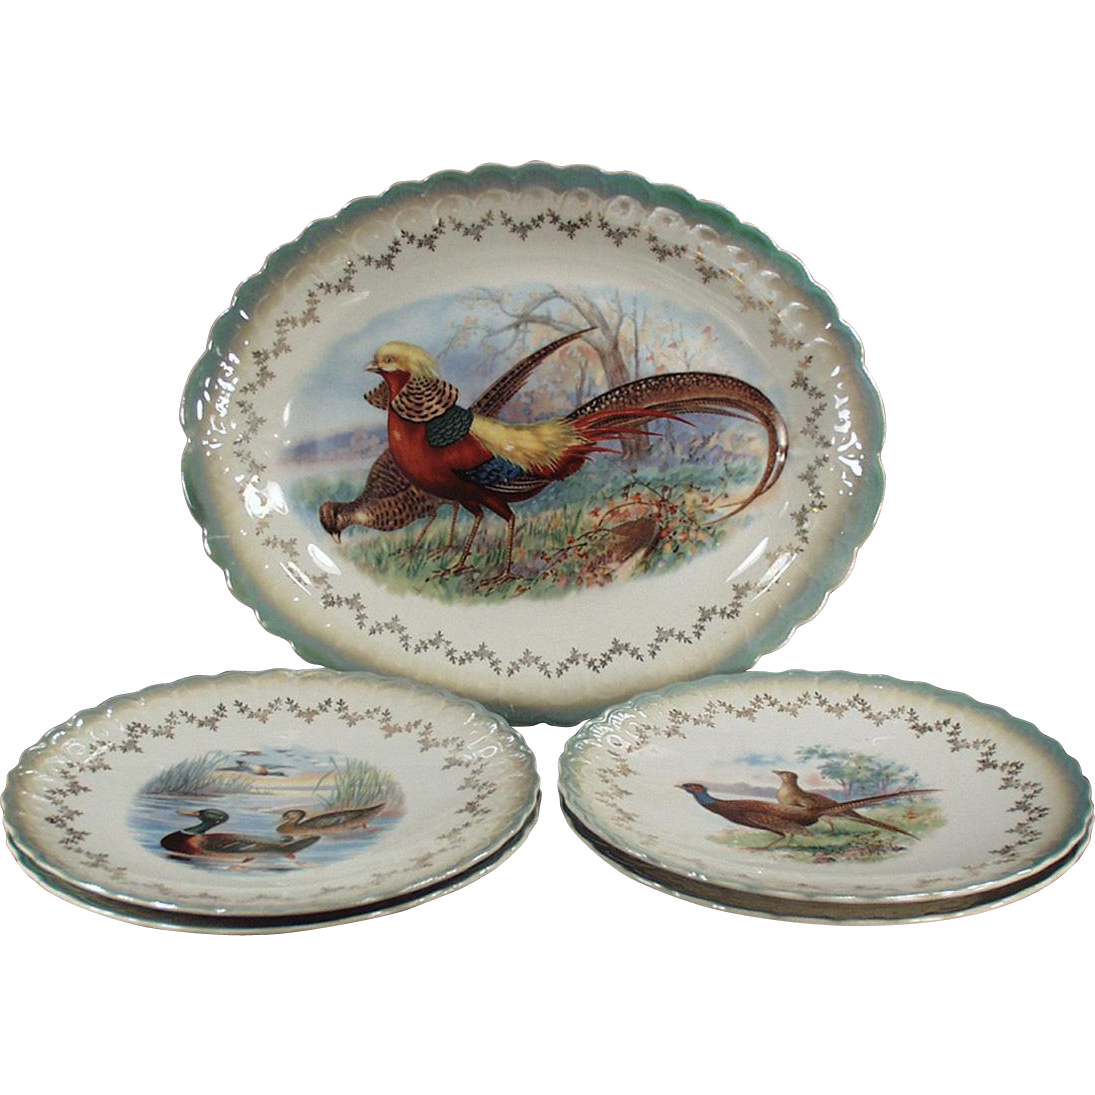 Vintage Bird Platter with 4 Plates - Sterling China - Beautiful Color and Detail